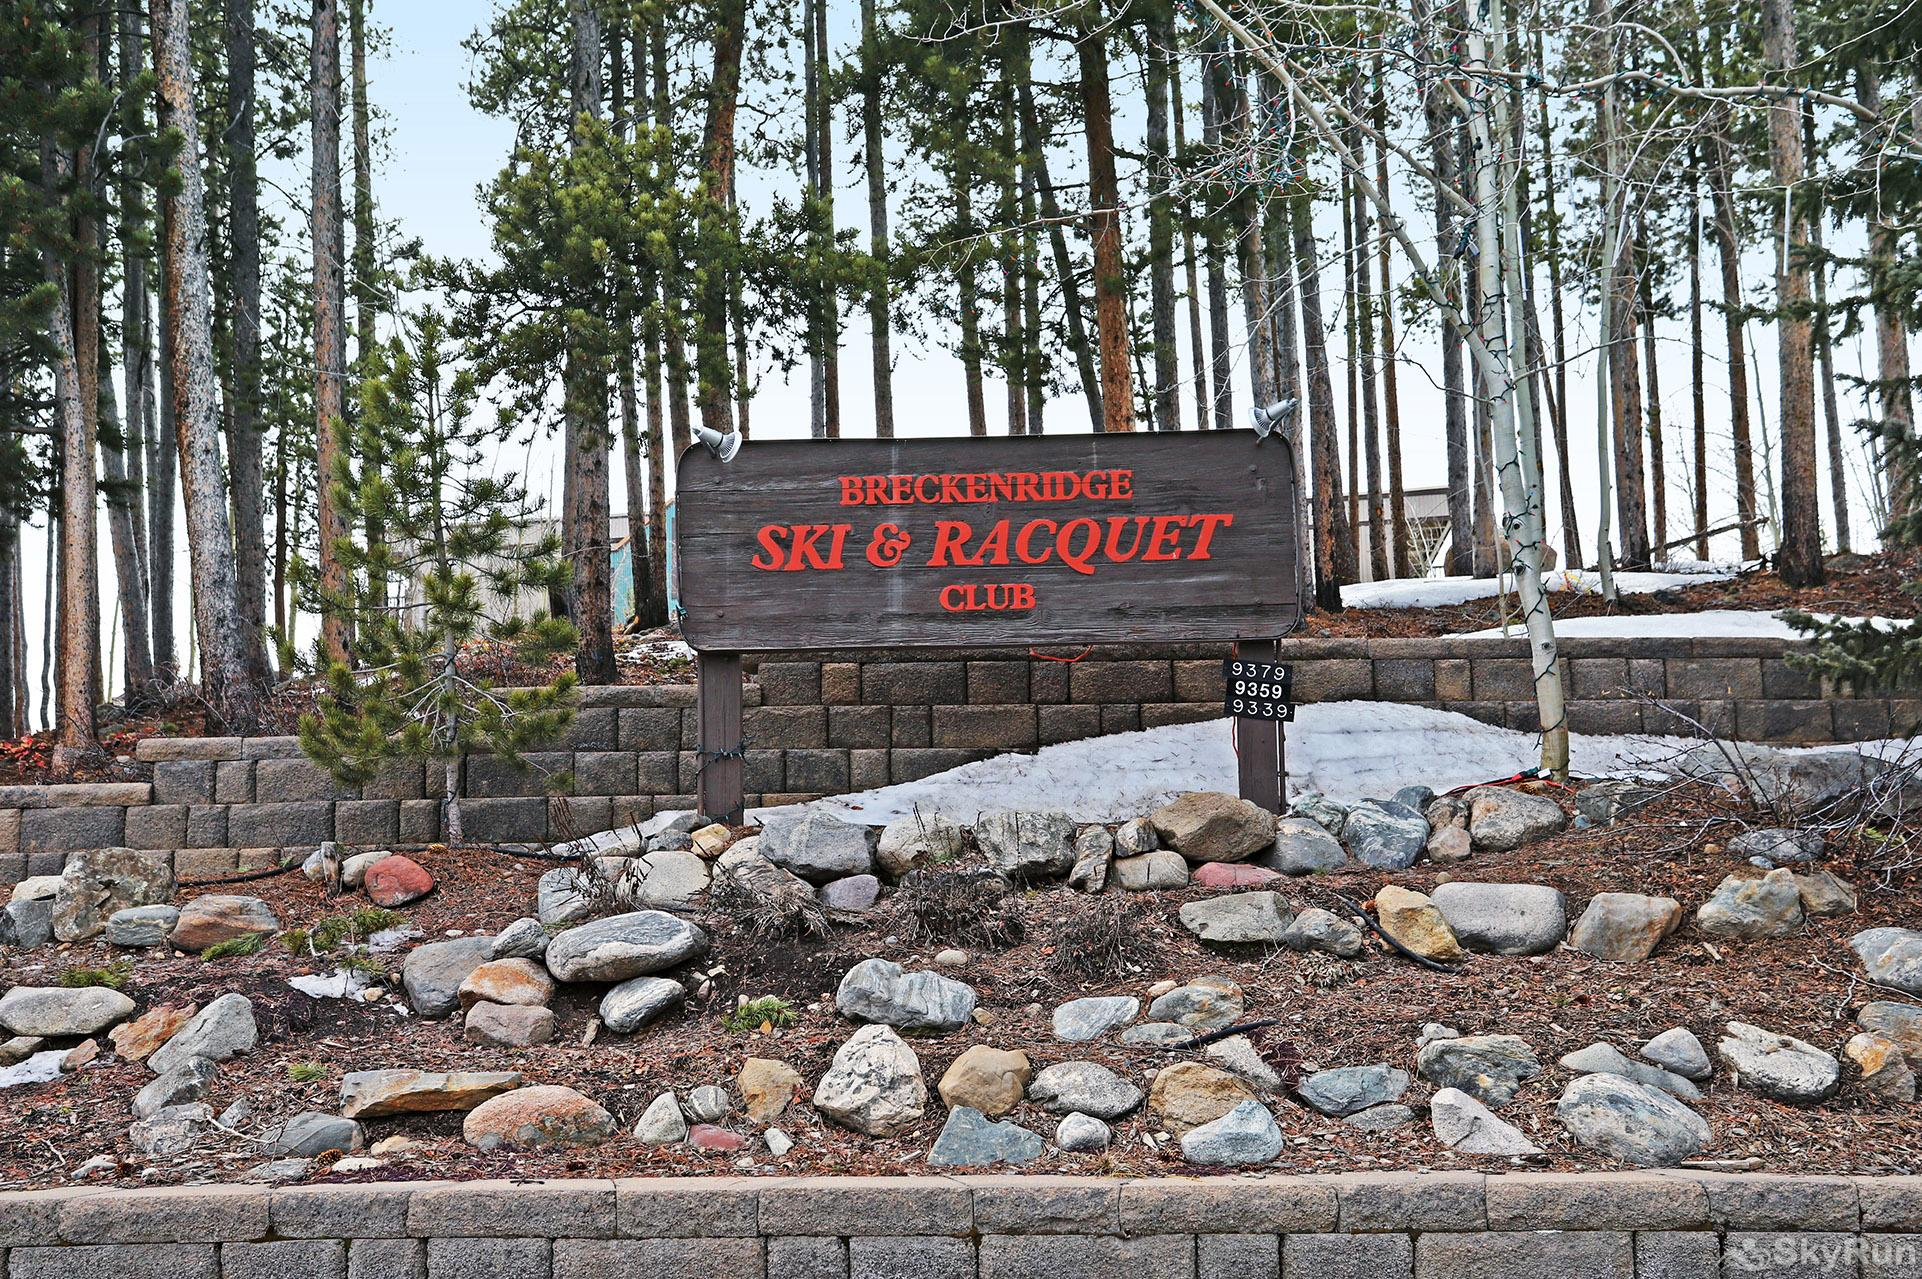 Ski and Racquet Club B106 Ski & Racquet Club sign